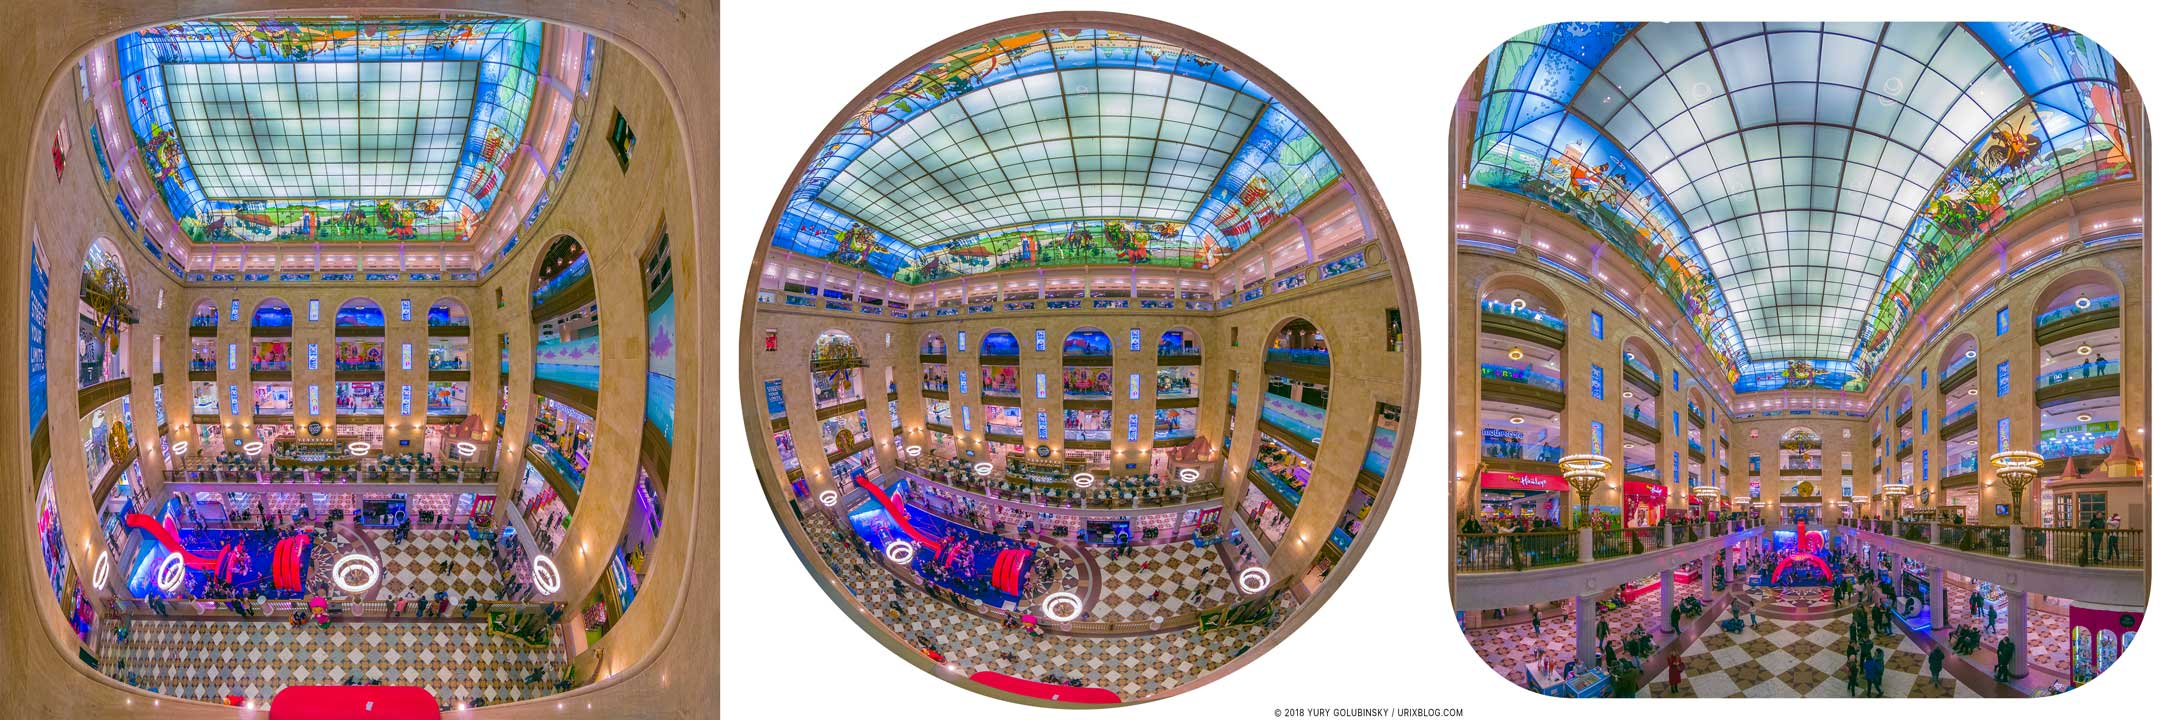 TsDM, Central Children's Store, shop, Lubyanka, panorama, fisheye, SJCAM, SJ8Pro, RAW, 2018, Moscow, Russia